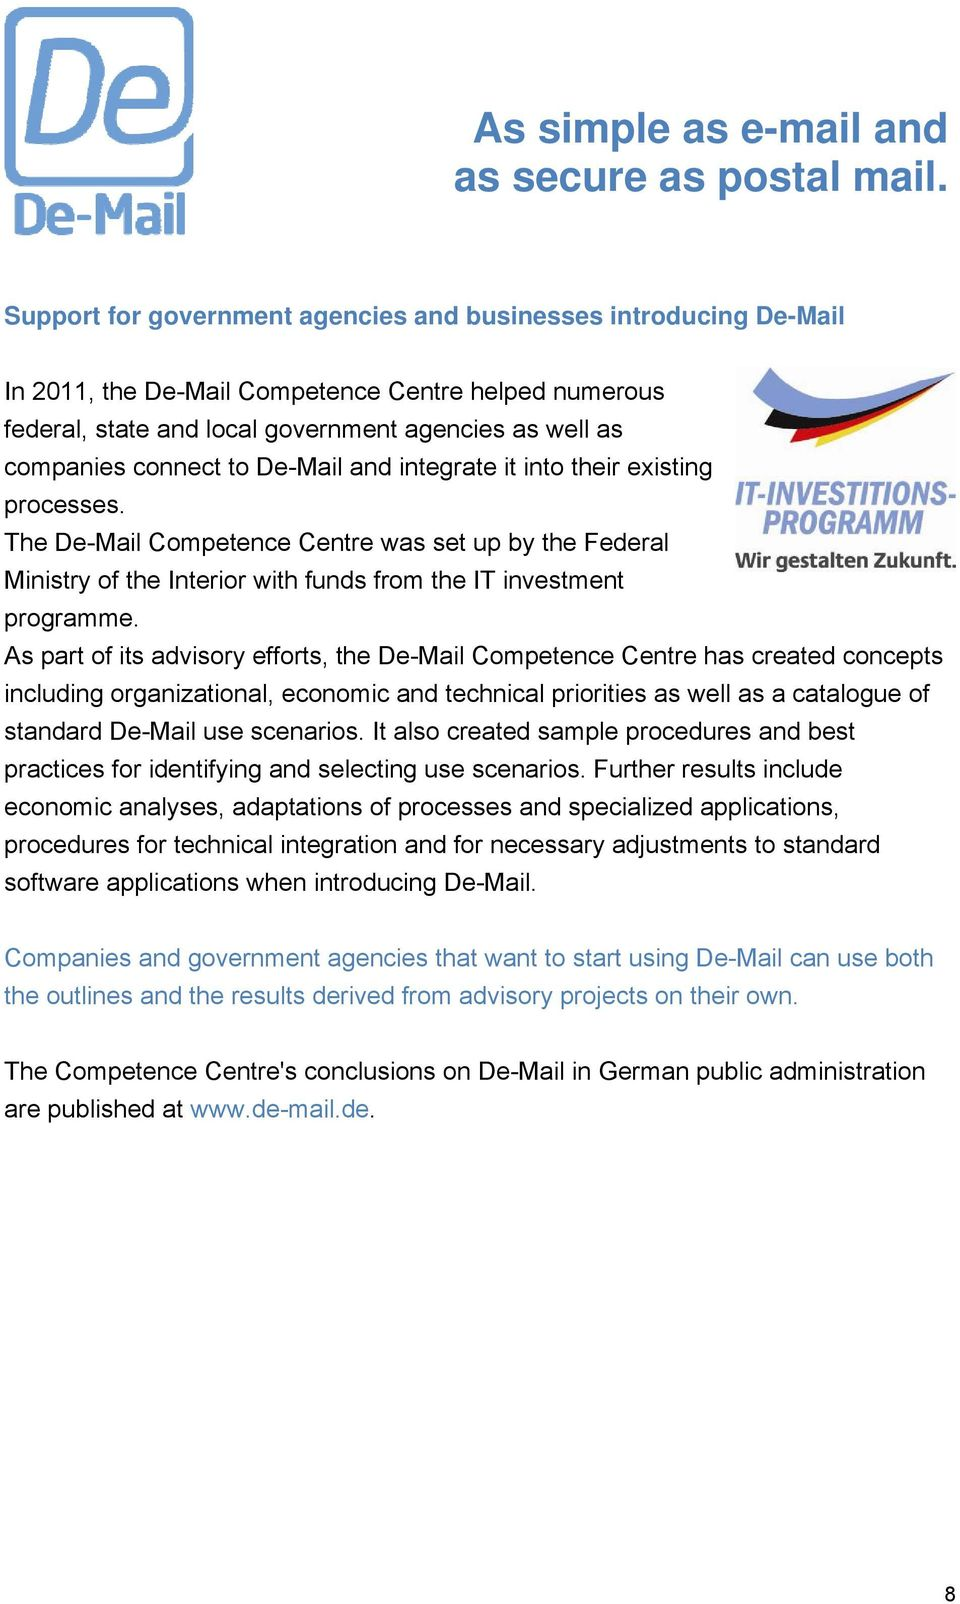 As part of its advisory efforts, the De-Mail Competence Centre has created concepts including organizational, economic and technical priorities as well as a catalogue of standard De-Mail use